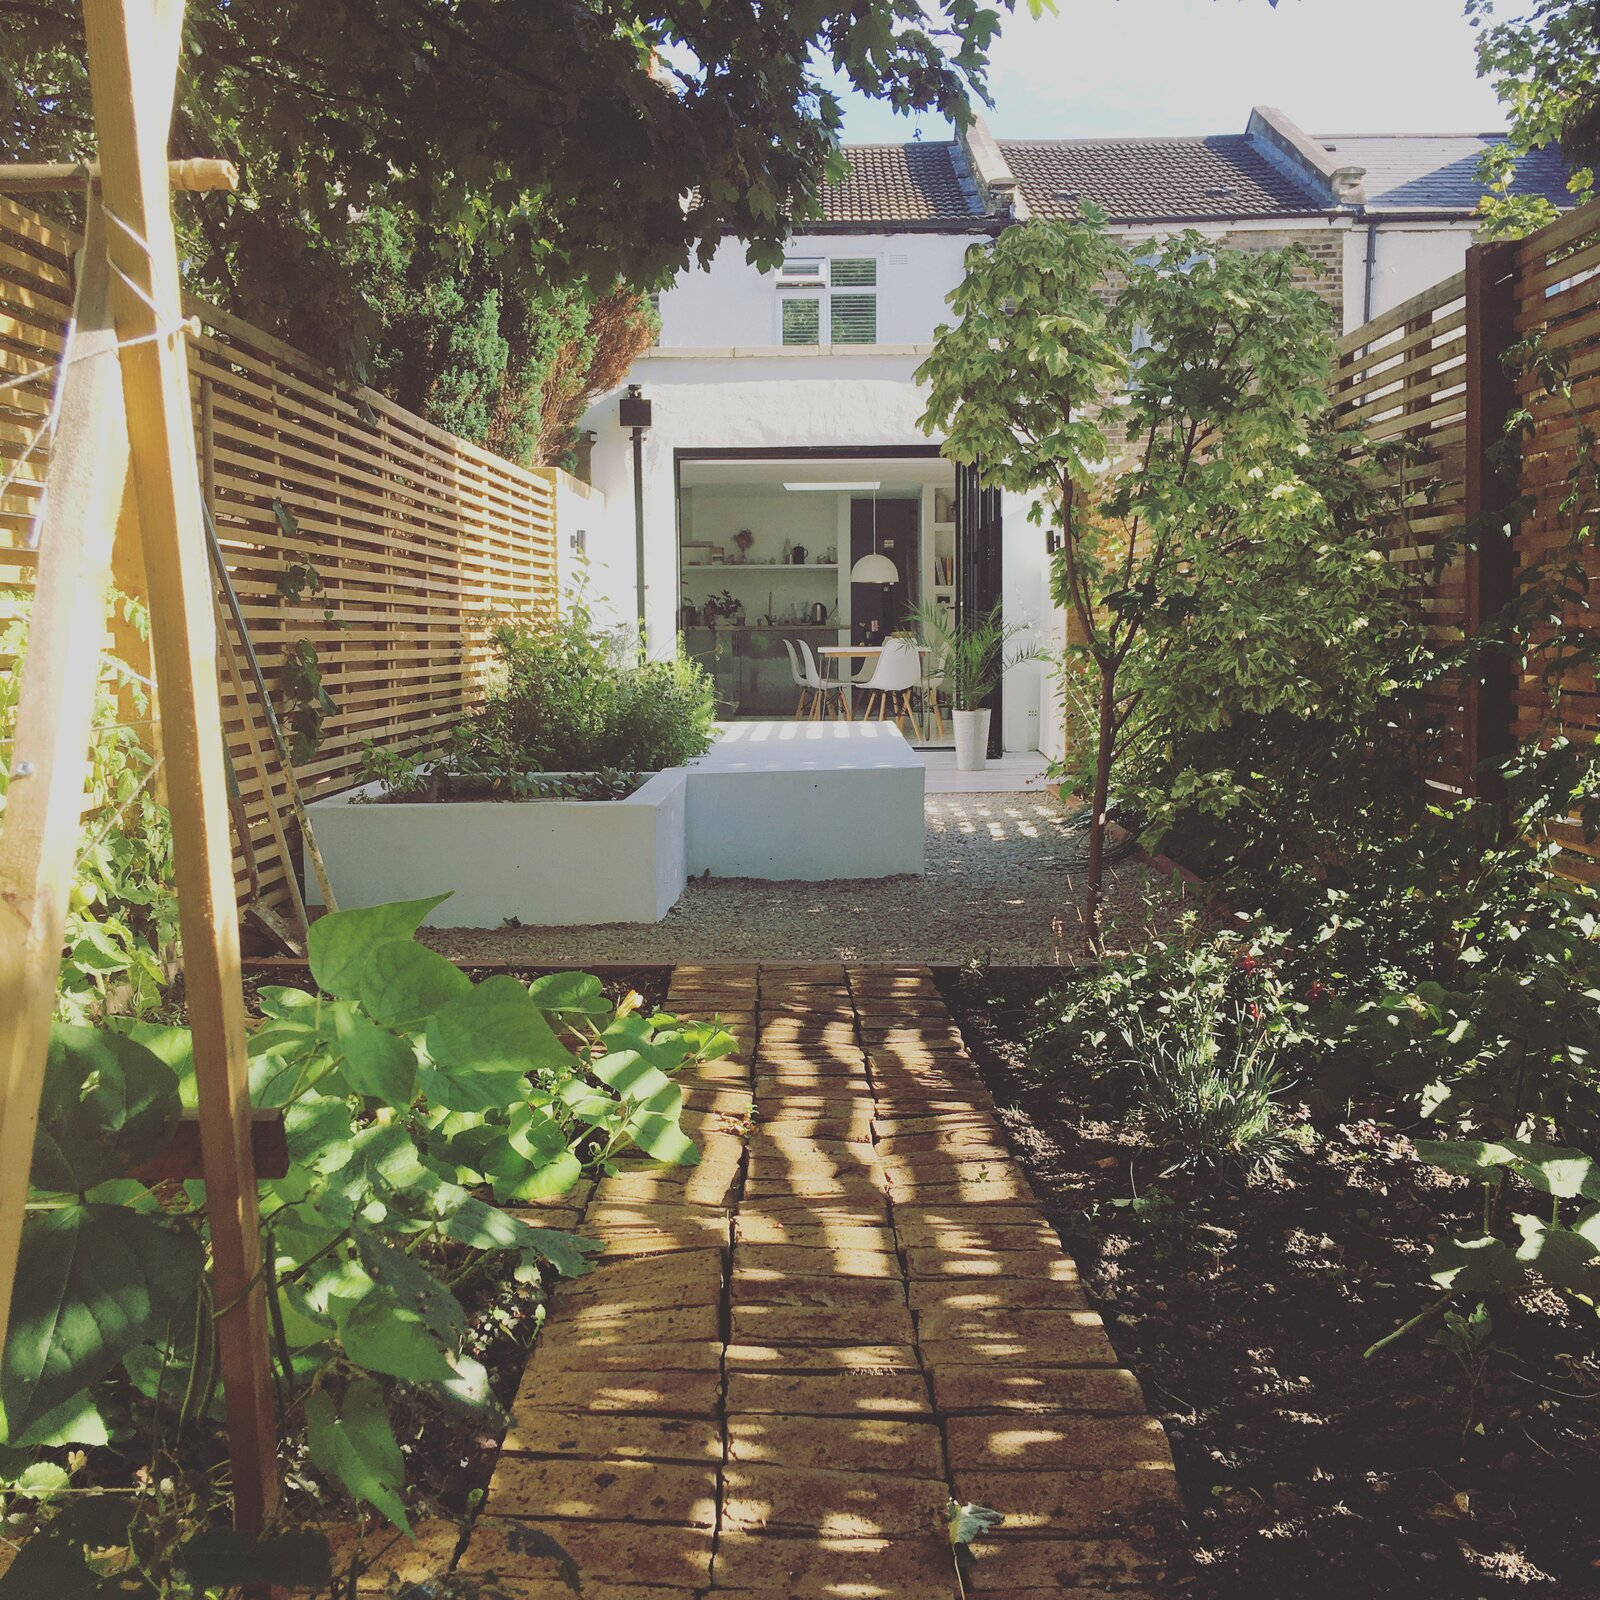 Outdoor, Wood, Garden, Vegetables, Raised Planters, Flowers, Shrubs, Trees, Landscape, Hardscapes, and Wood Garden with mature landscaping growing fruit, vegetables and flowers   Outdoor Vegetables Landscape Wood Photos from Studio Cottage